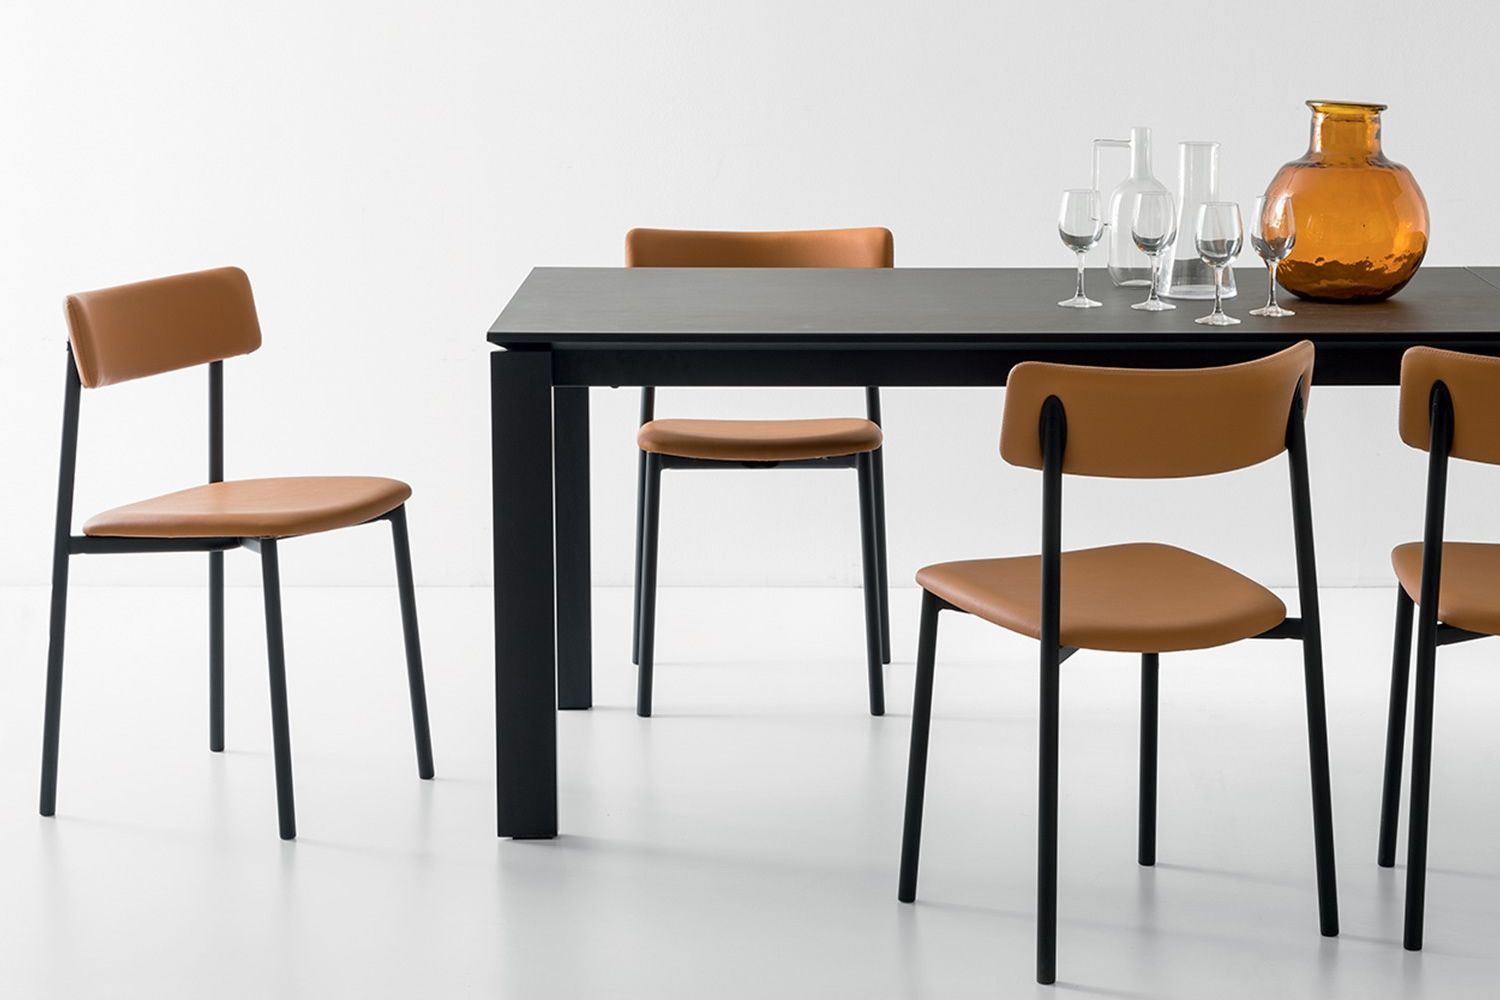 CB1955 Up! - Sedia Connubia - Calligaris in metallo, seduta ...